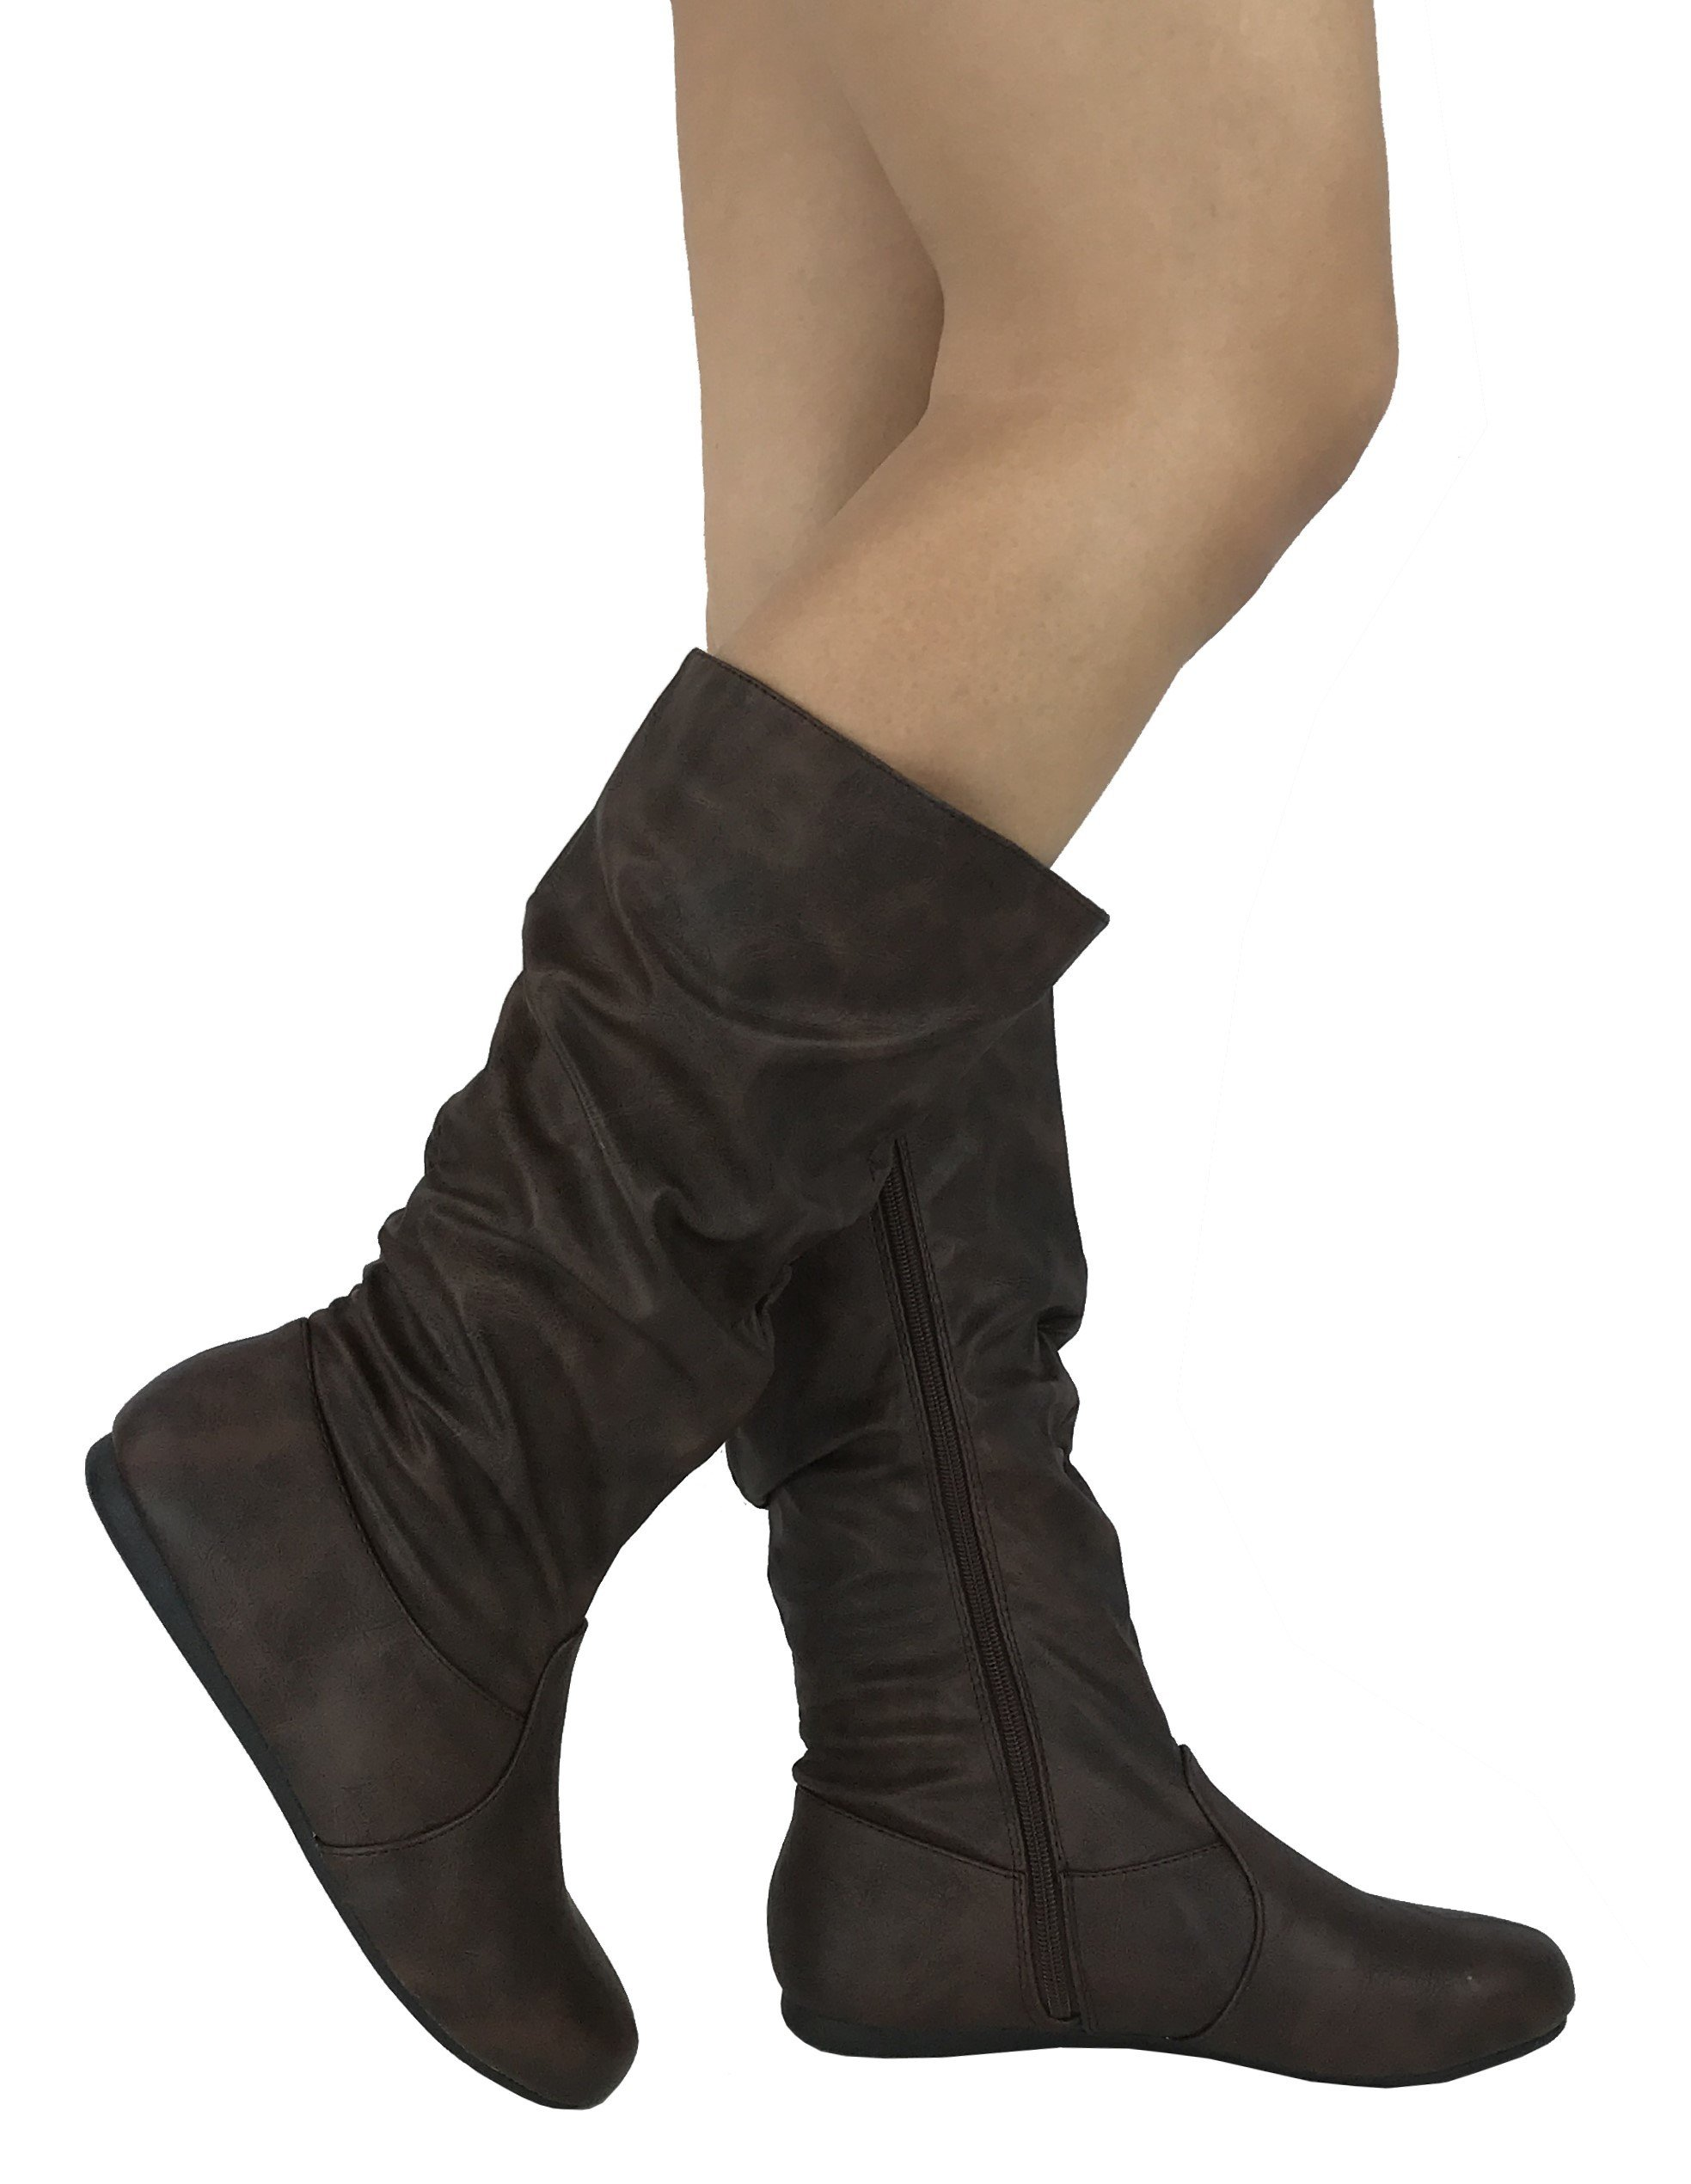 Wells Collection Womens Wonda Boots Soft Slouchy Flat to Low Heel Under Knee High, Brown PU, 7.5